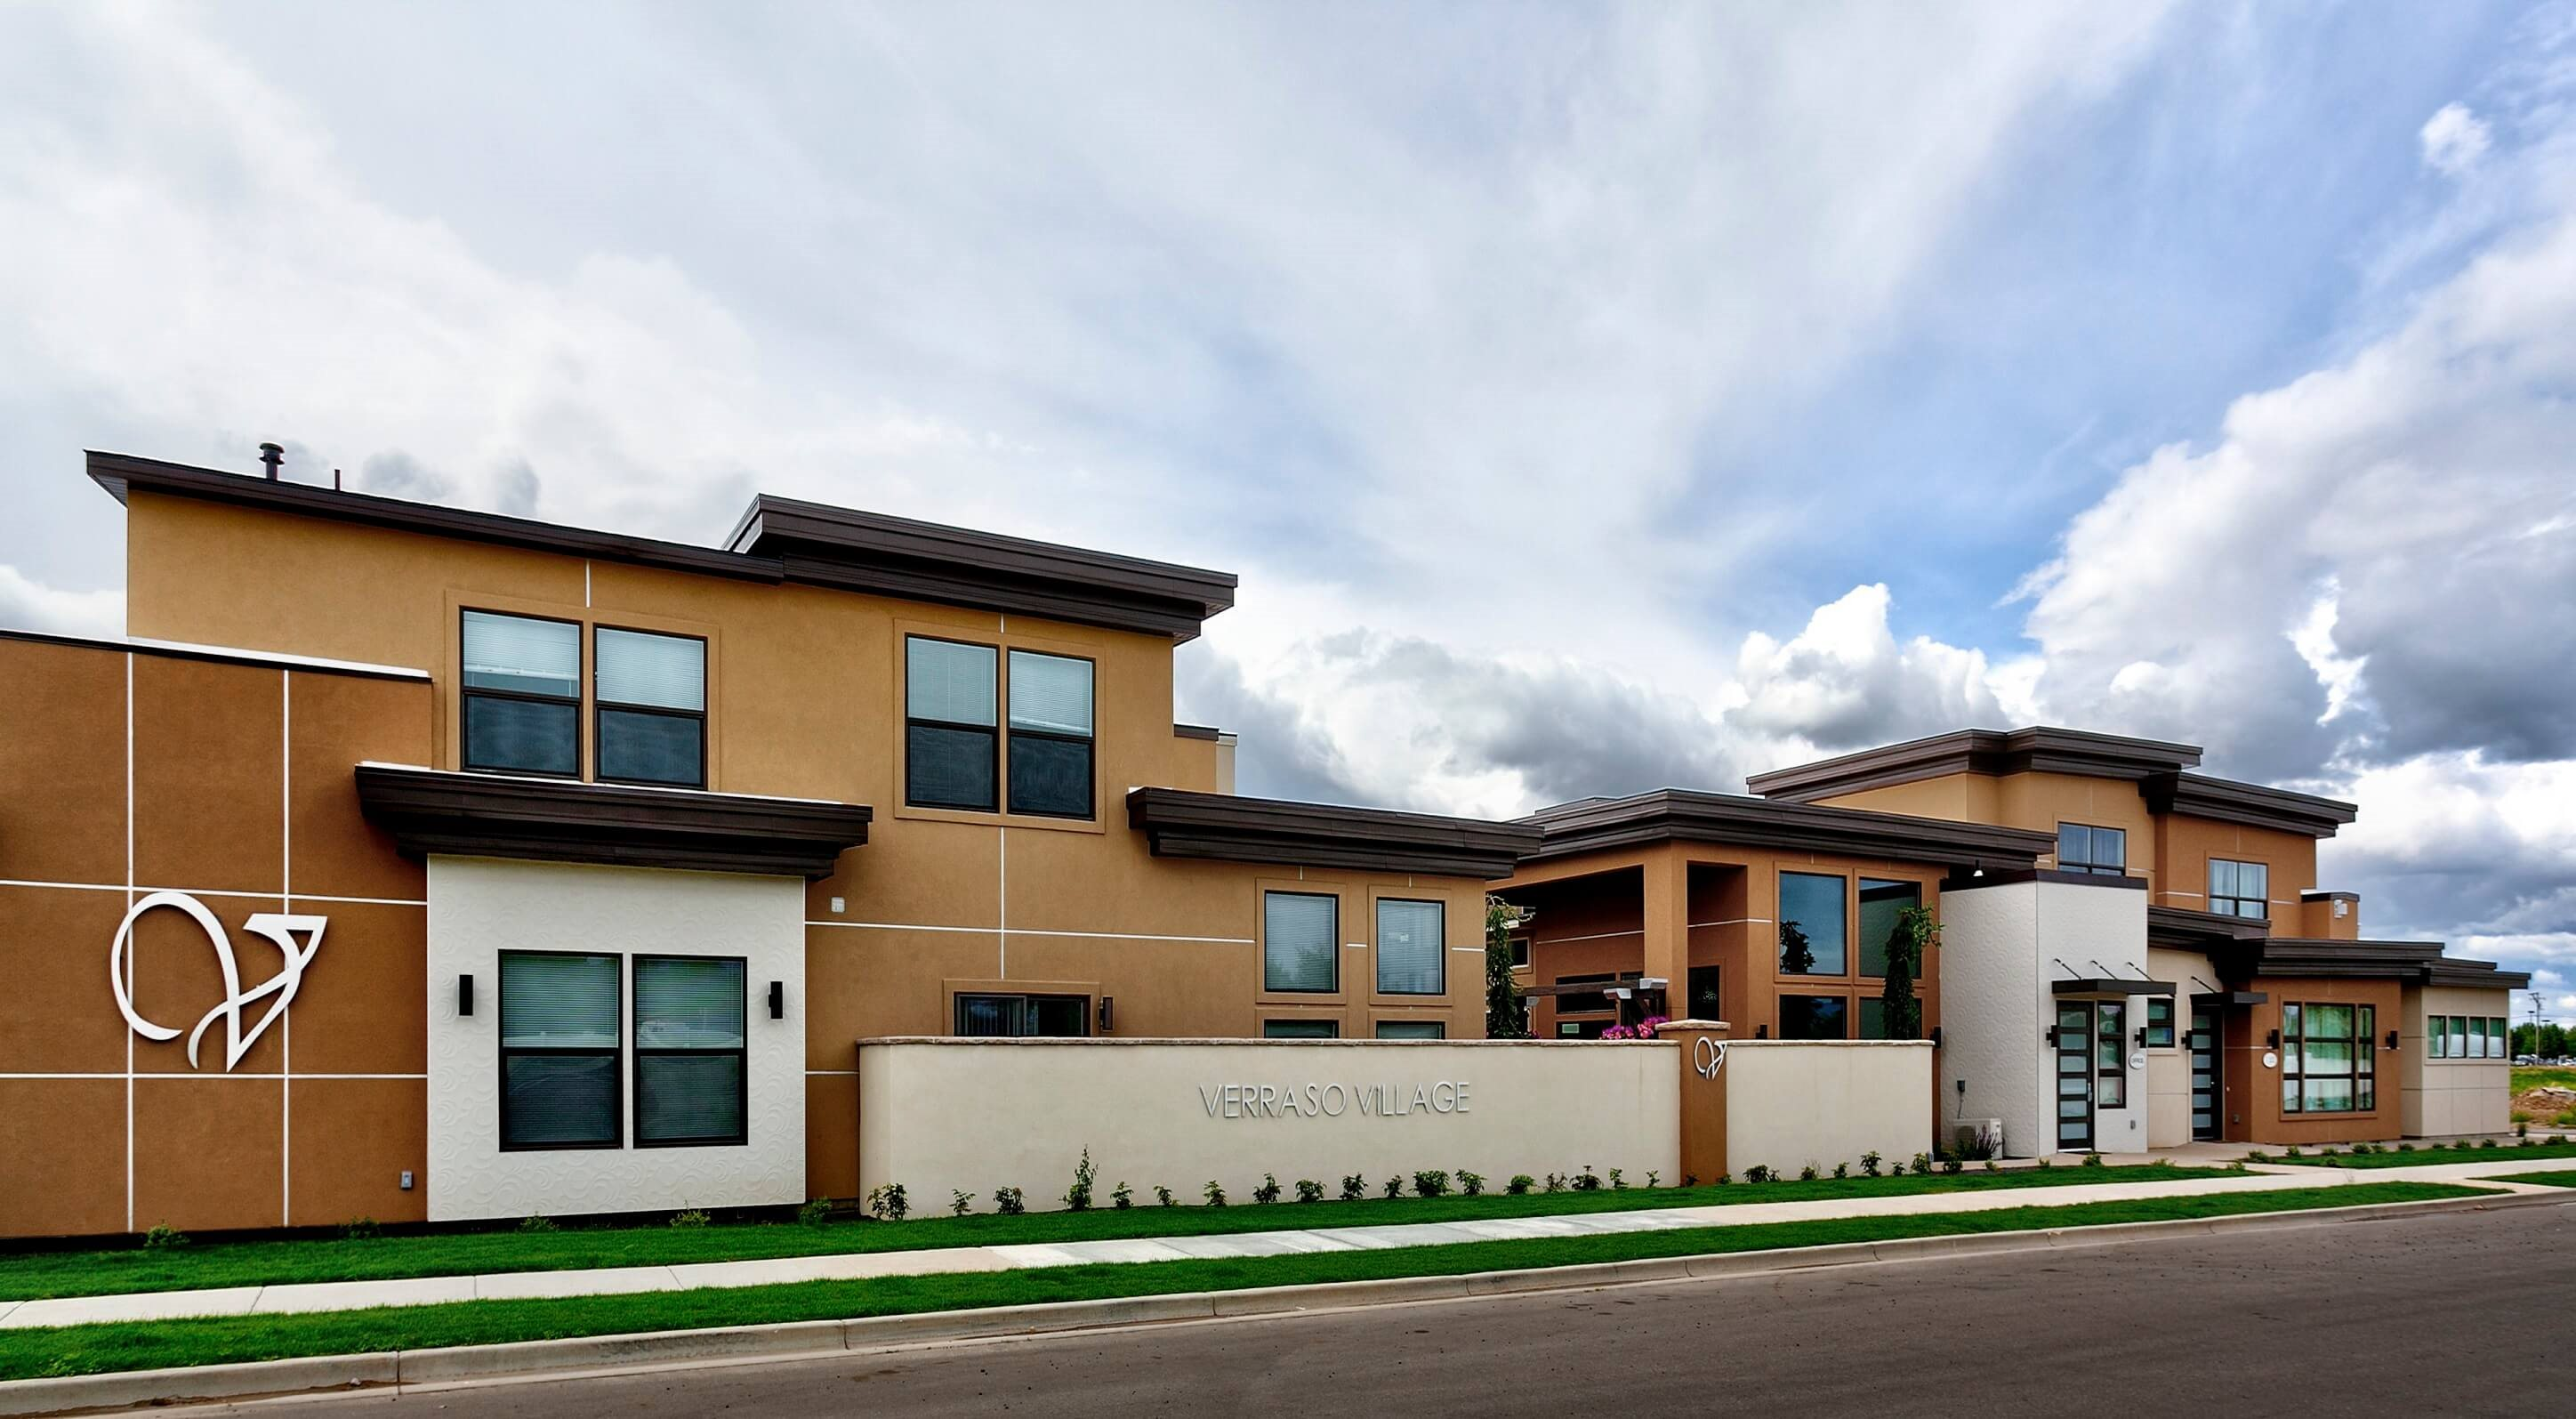 Elegant Exterior View at Verraso Village, Meridian, ID, 83642